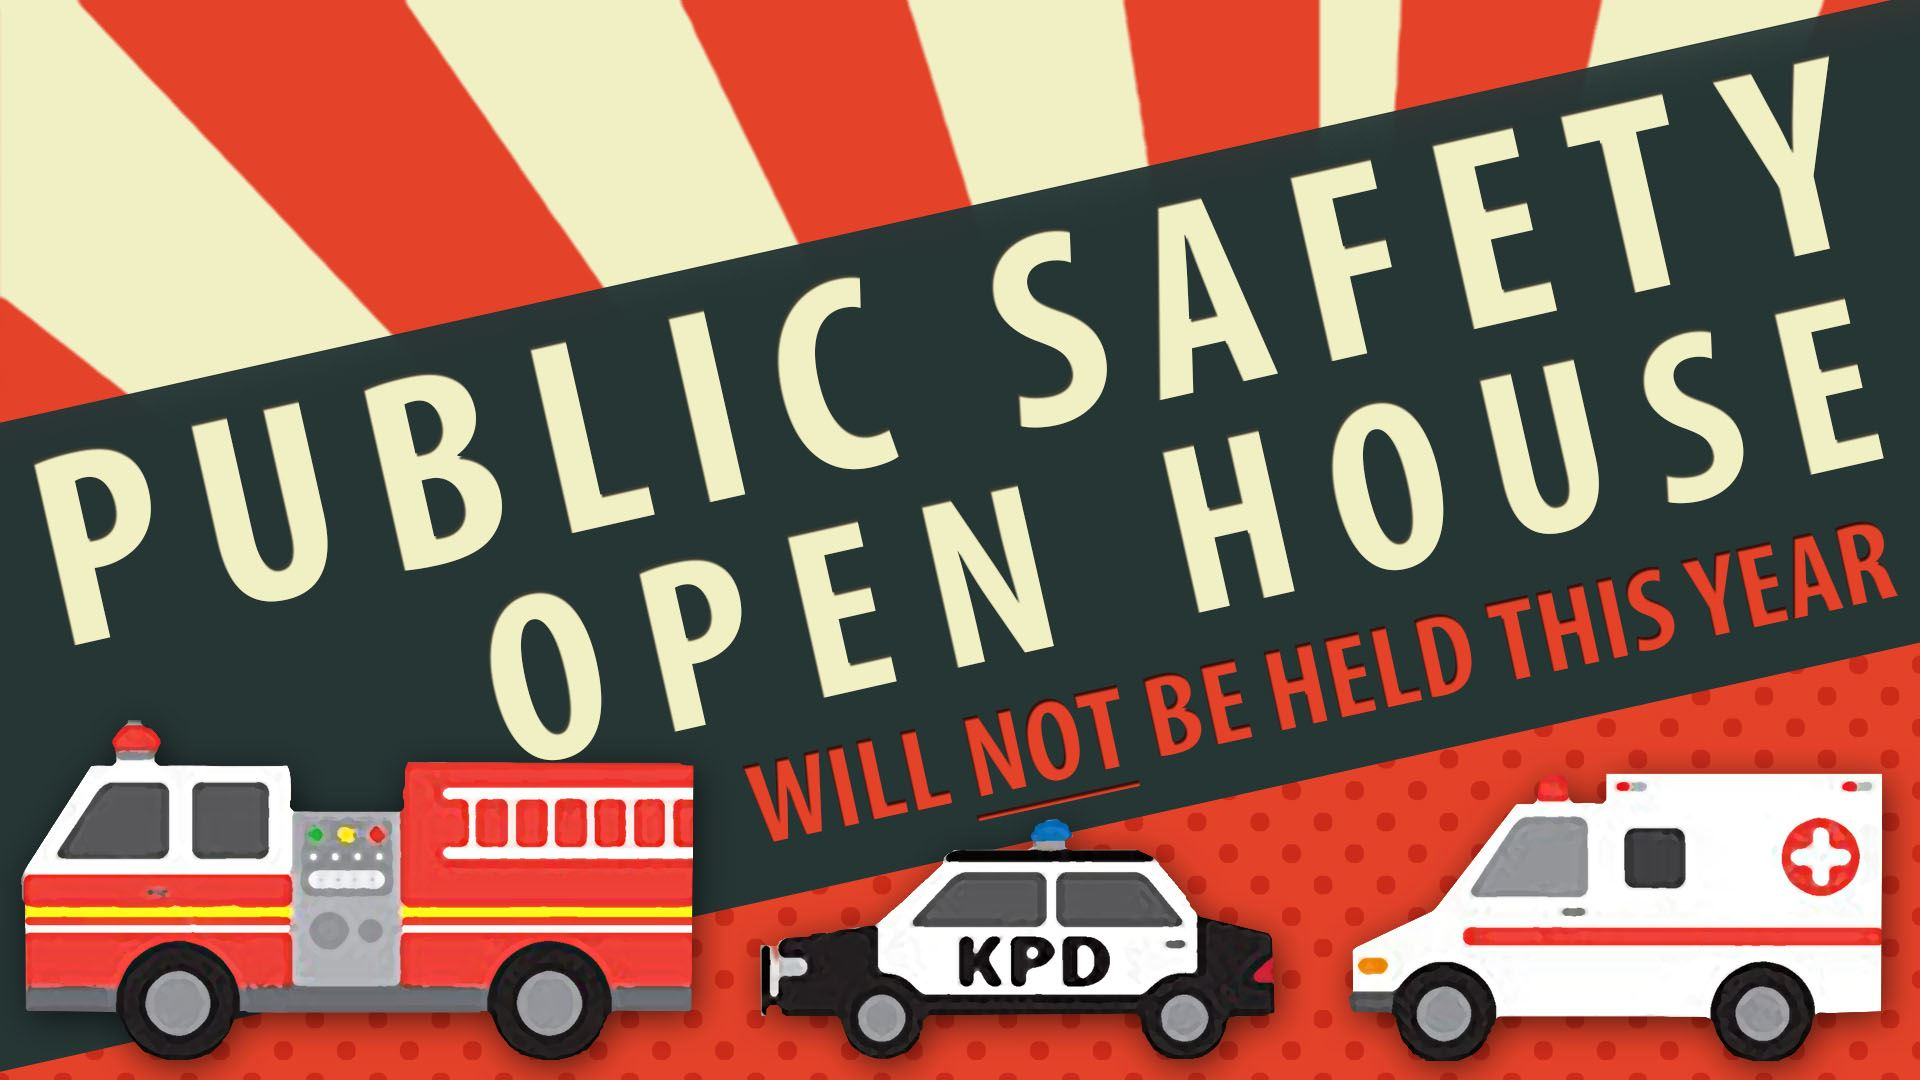 Public Safety Open House will NOT be held this year